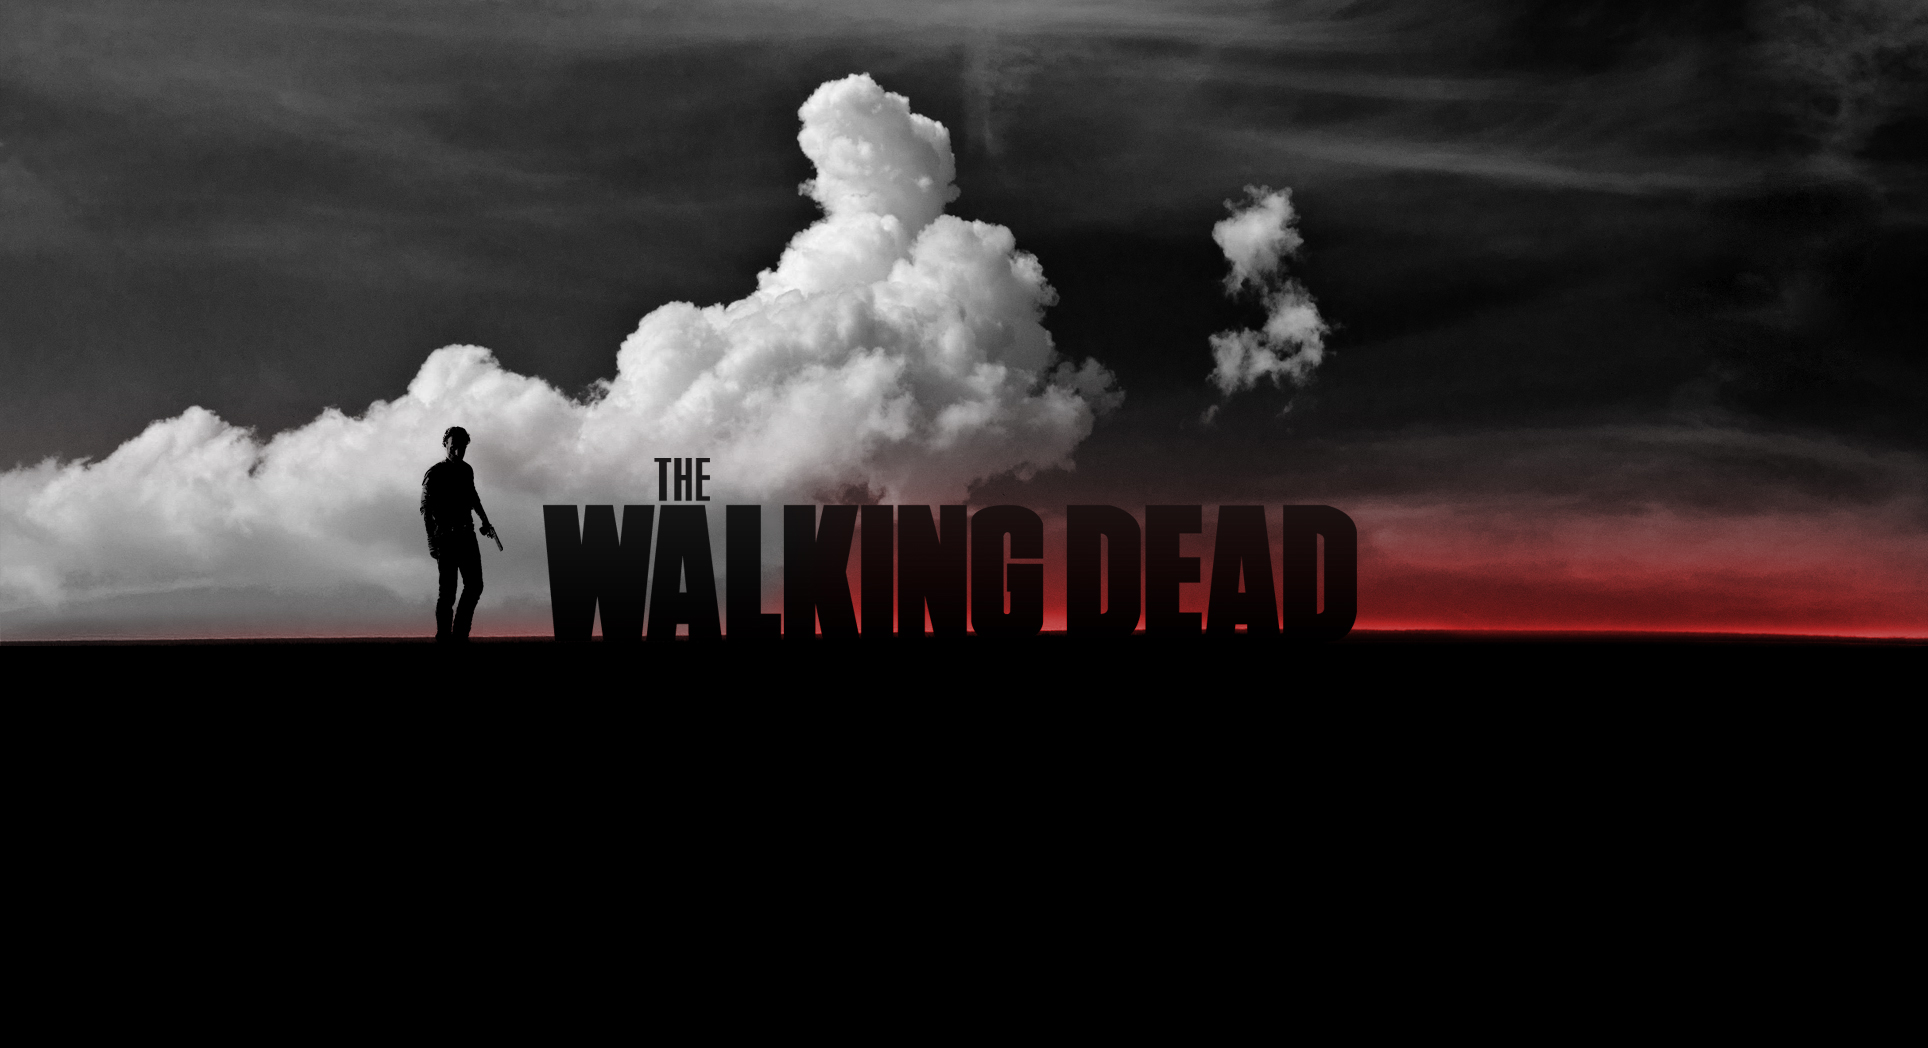 The Walking Dead Wallpaper And Background Image